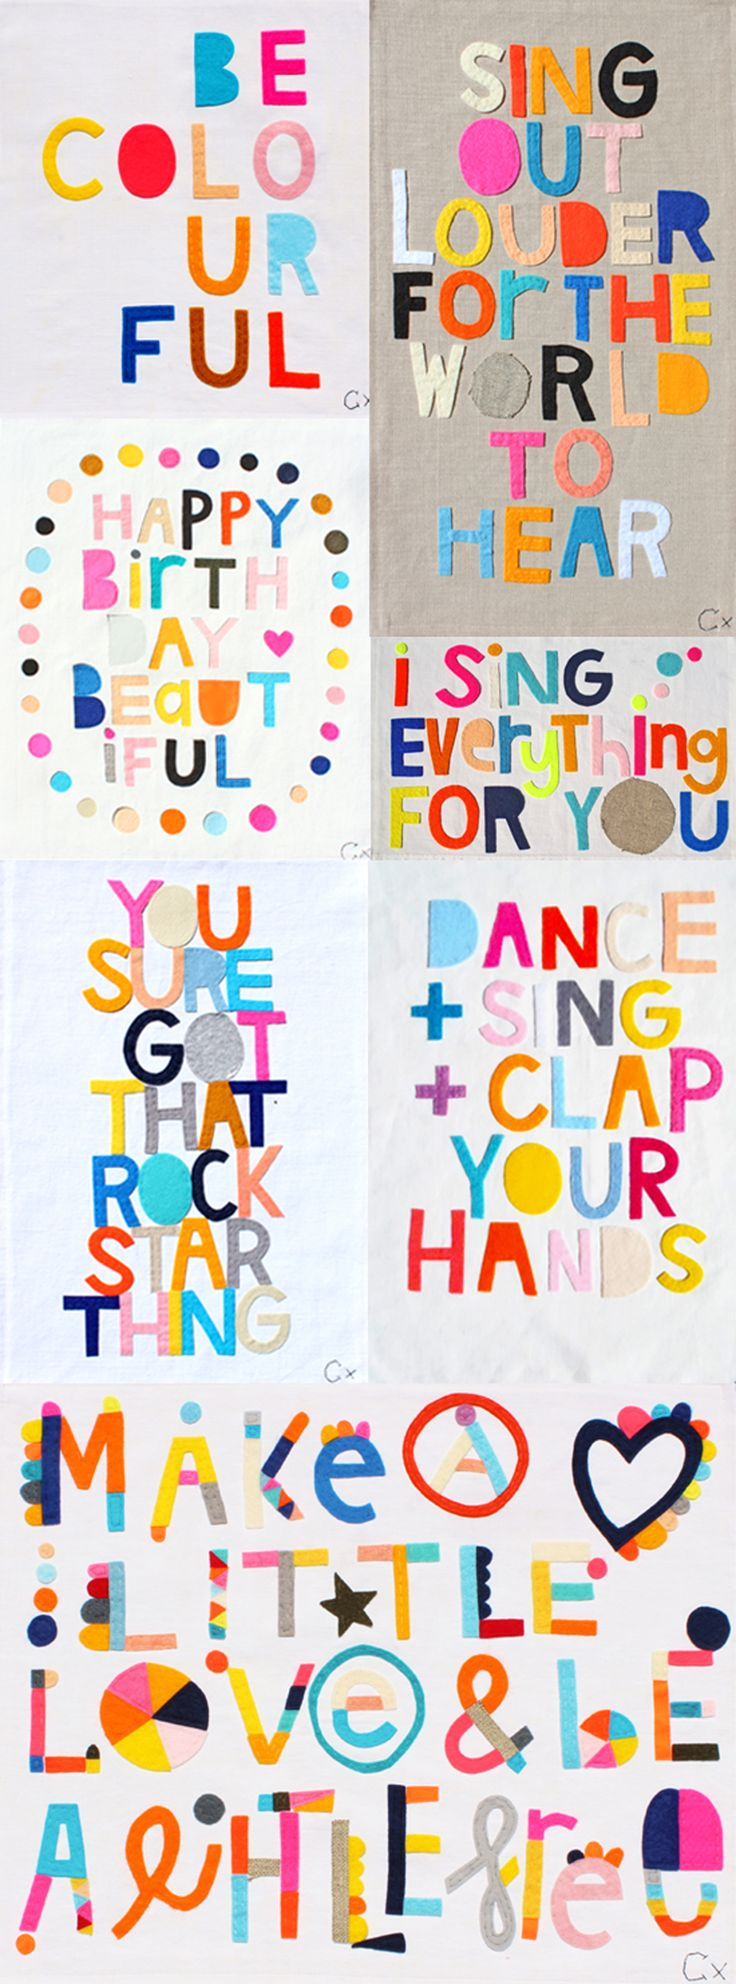 Cut out felt words to create art for kids rooms.